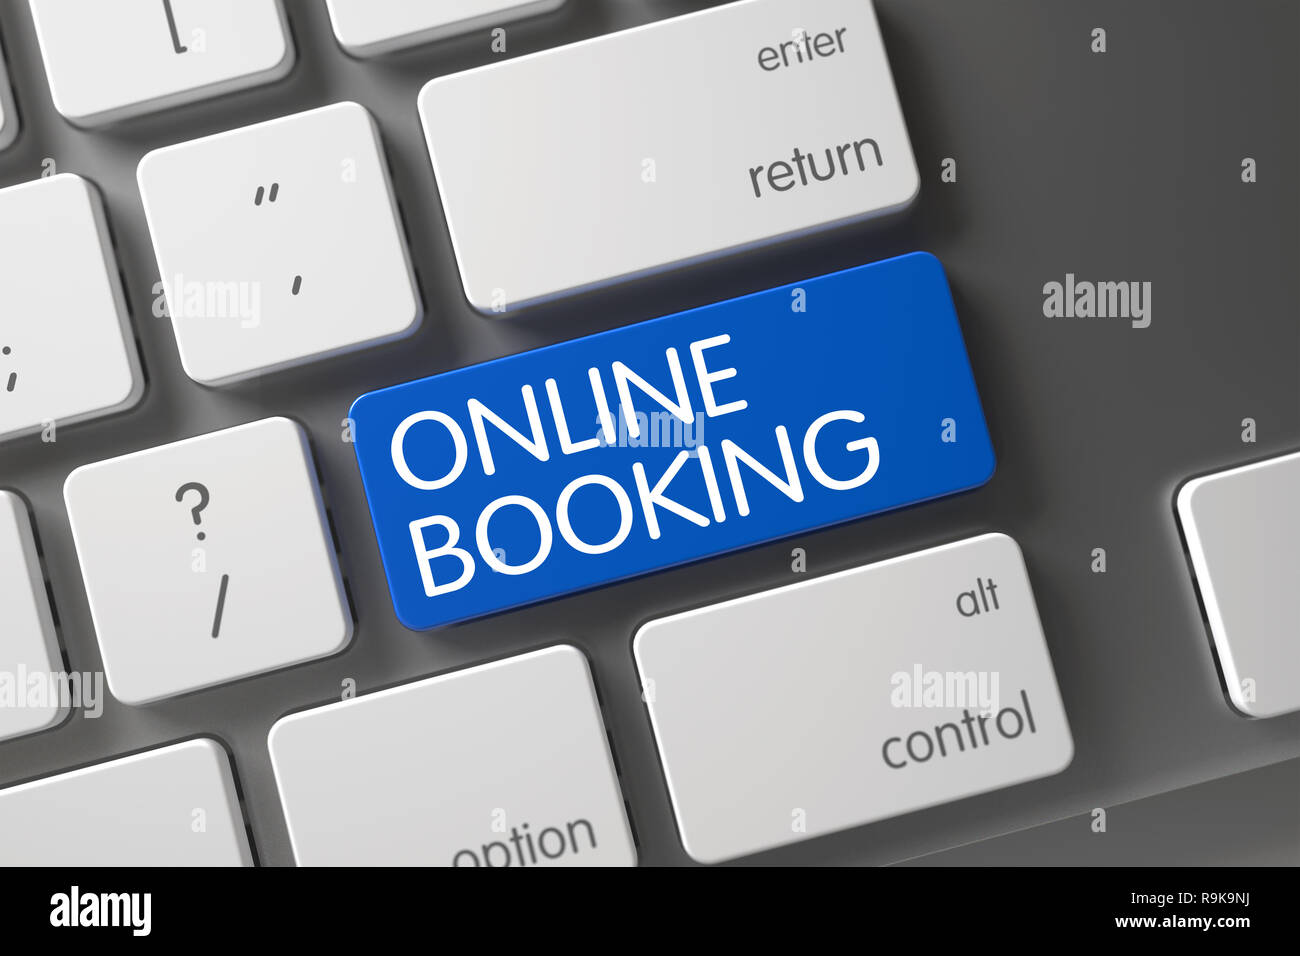 Online Booking Concept: Modern Keyboard with Online Booking, Selected Focus on Blue Enter Button. 3D Illustration. - Stock Image